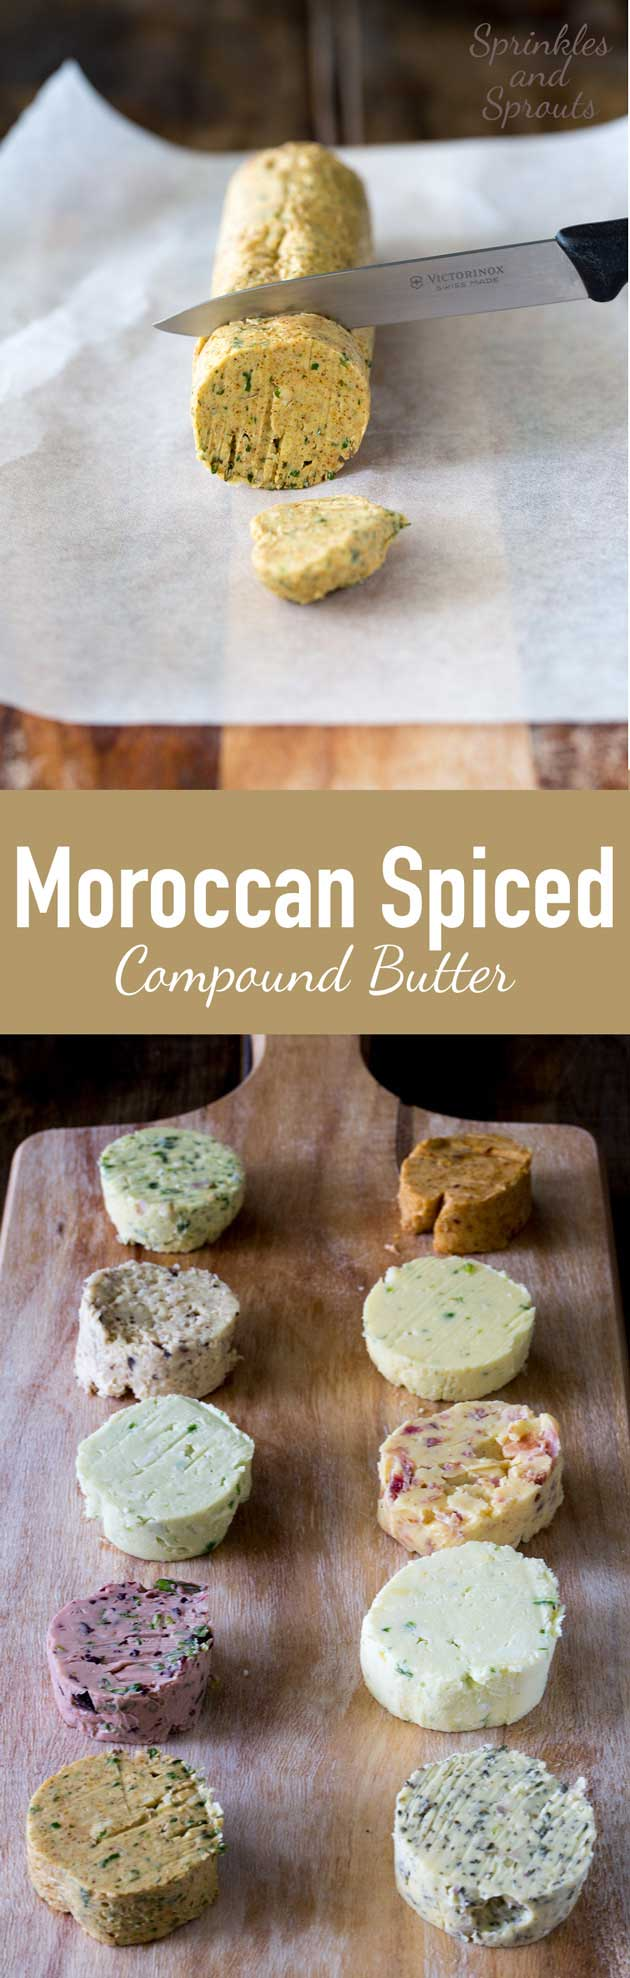 This Moroccan spiced butter is packed with flavour! It smells beautiful! Even wrapped up in the cling film you can smell the wonderful spices. It is like being whisked off to Marrakesh.